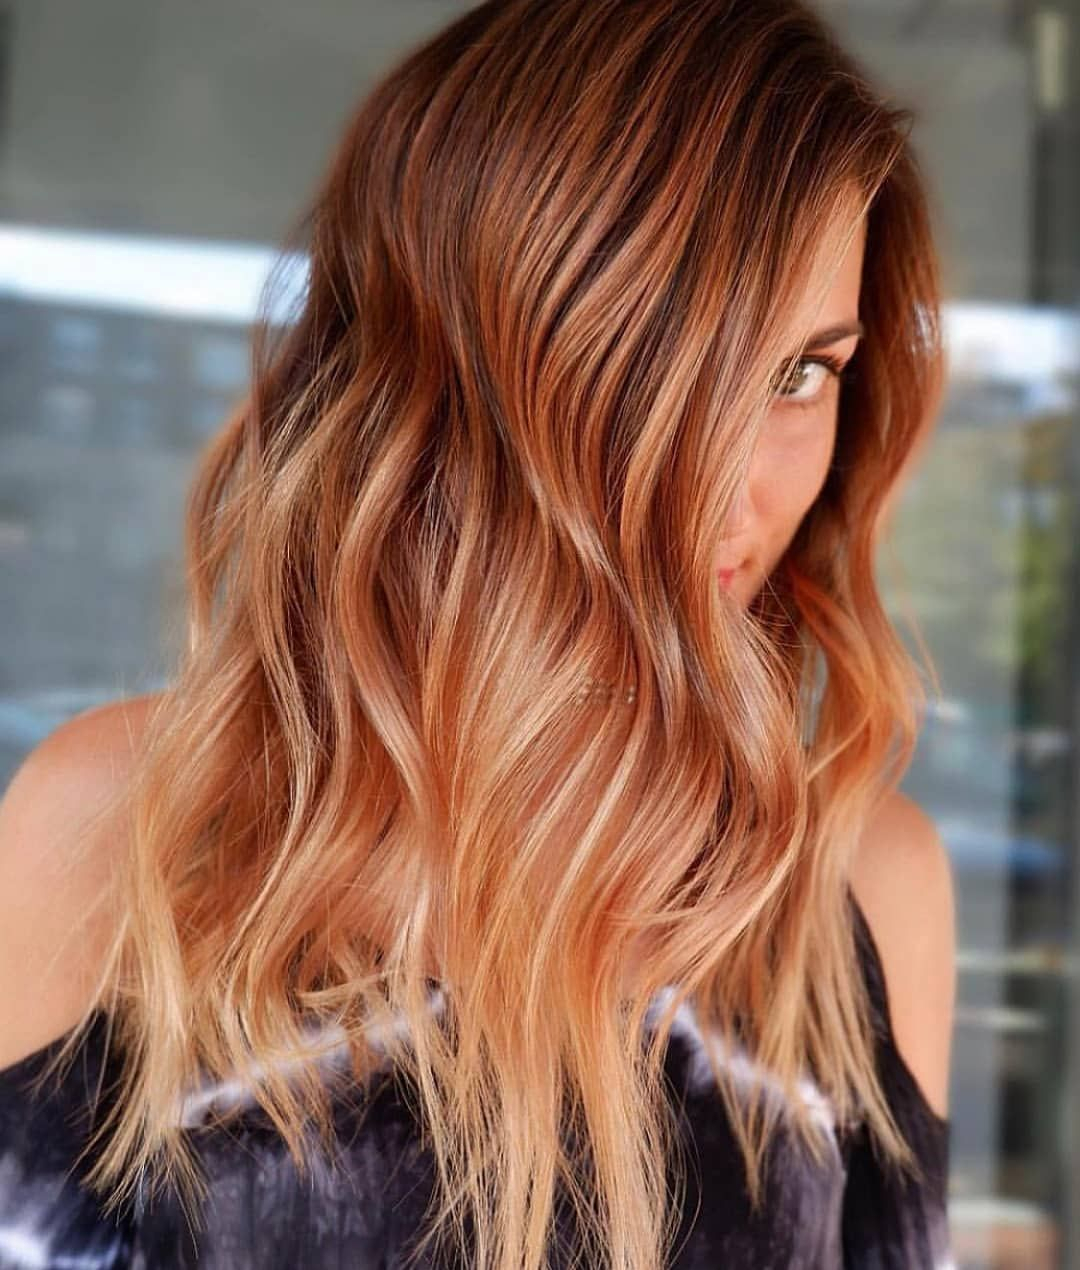 10 Cute Fun Red Hair Color Ideas 26 stylish and fun hair dye ideas to try in 2019 hair colors for 2020